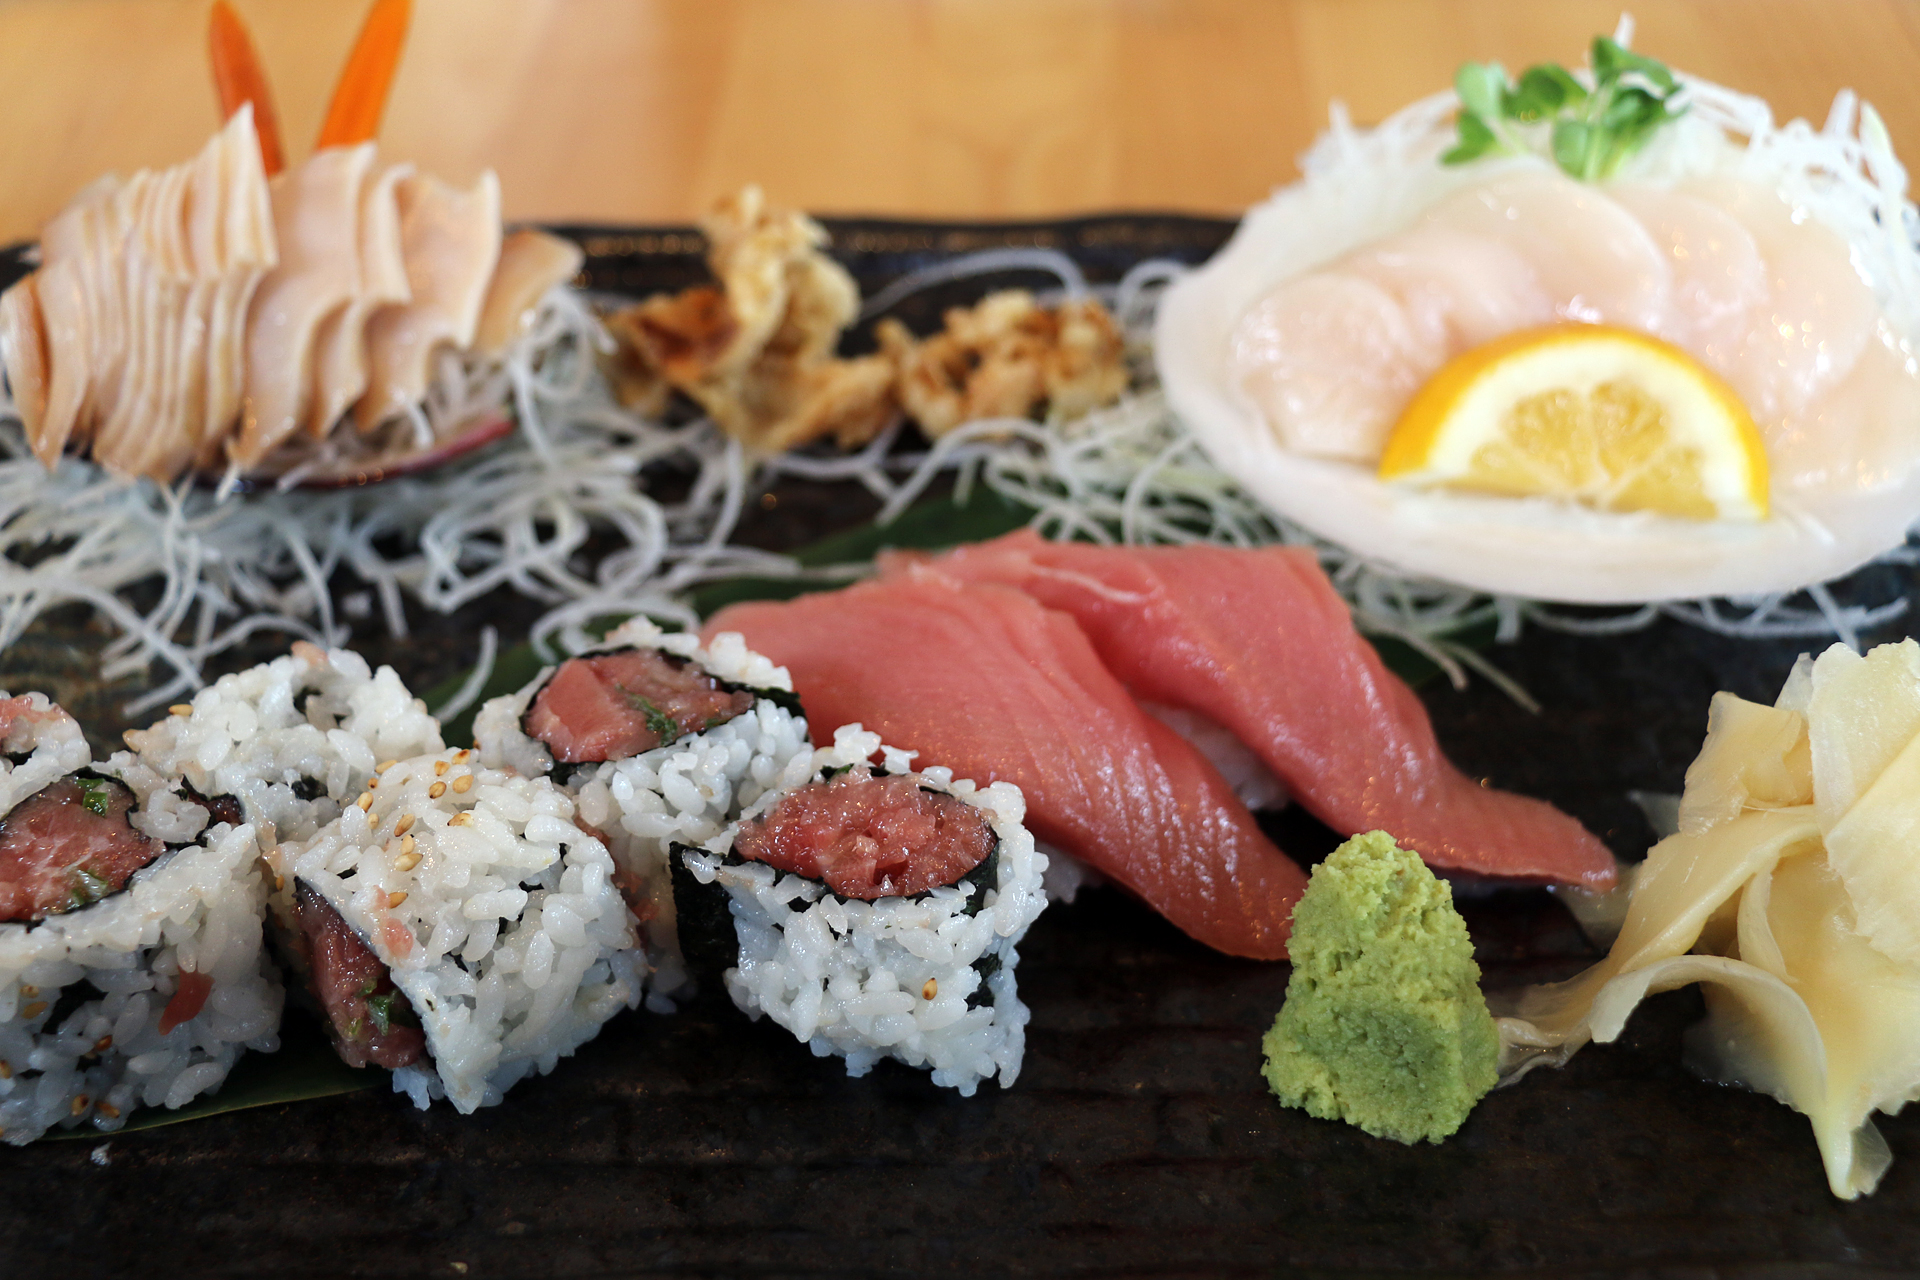 Daily Specials: An assortment of nigiri sushi and sashimi at Kiku.